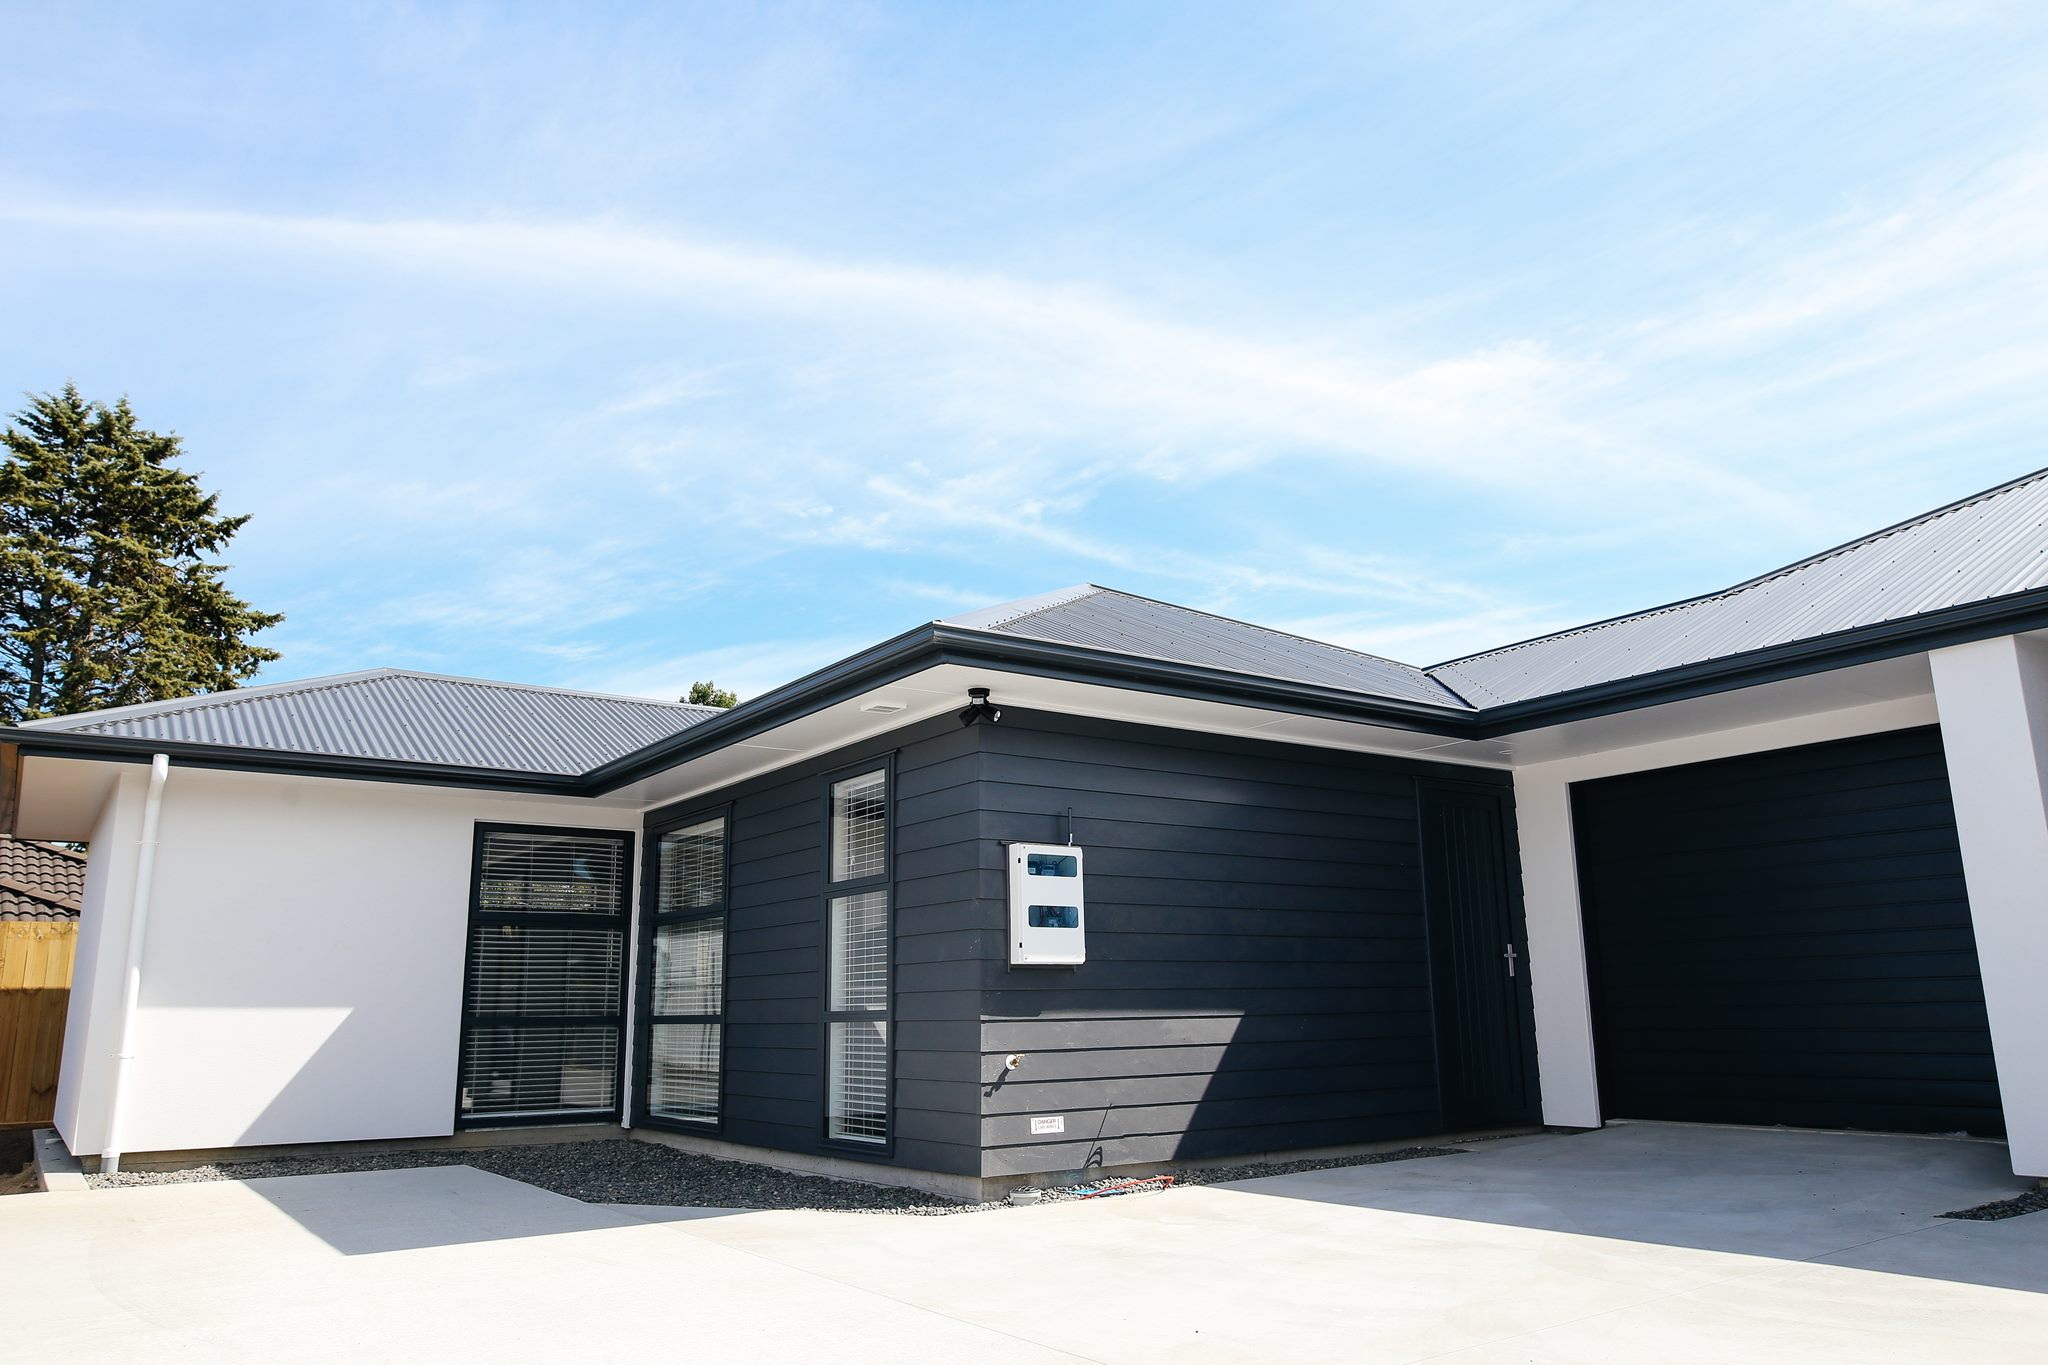 Cheap 2 Bedroom Houses for Rent near Me